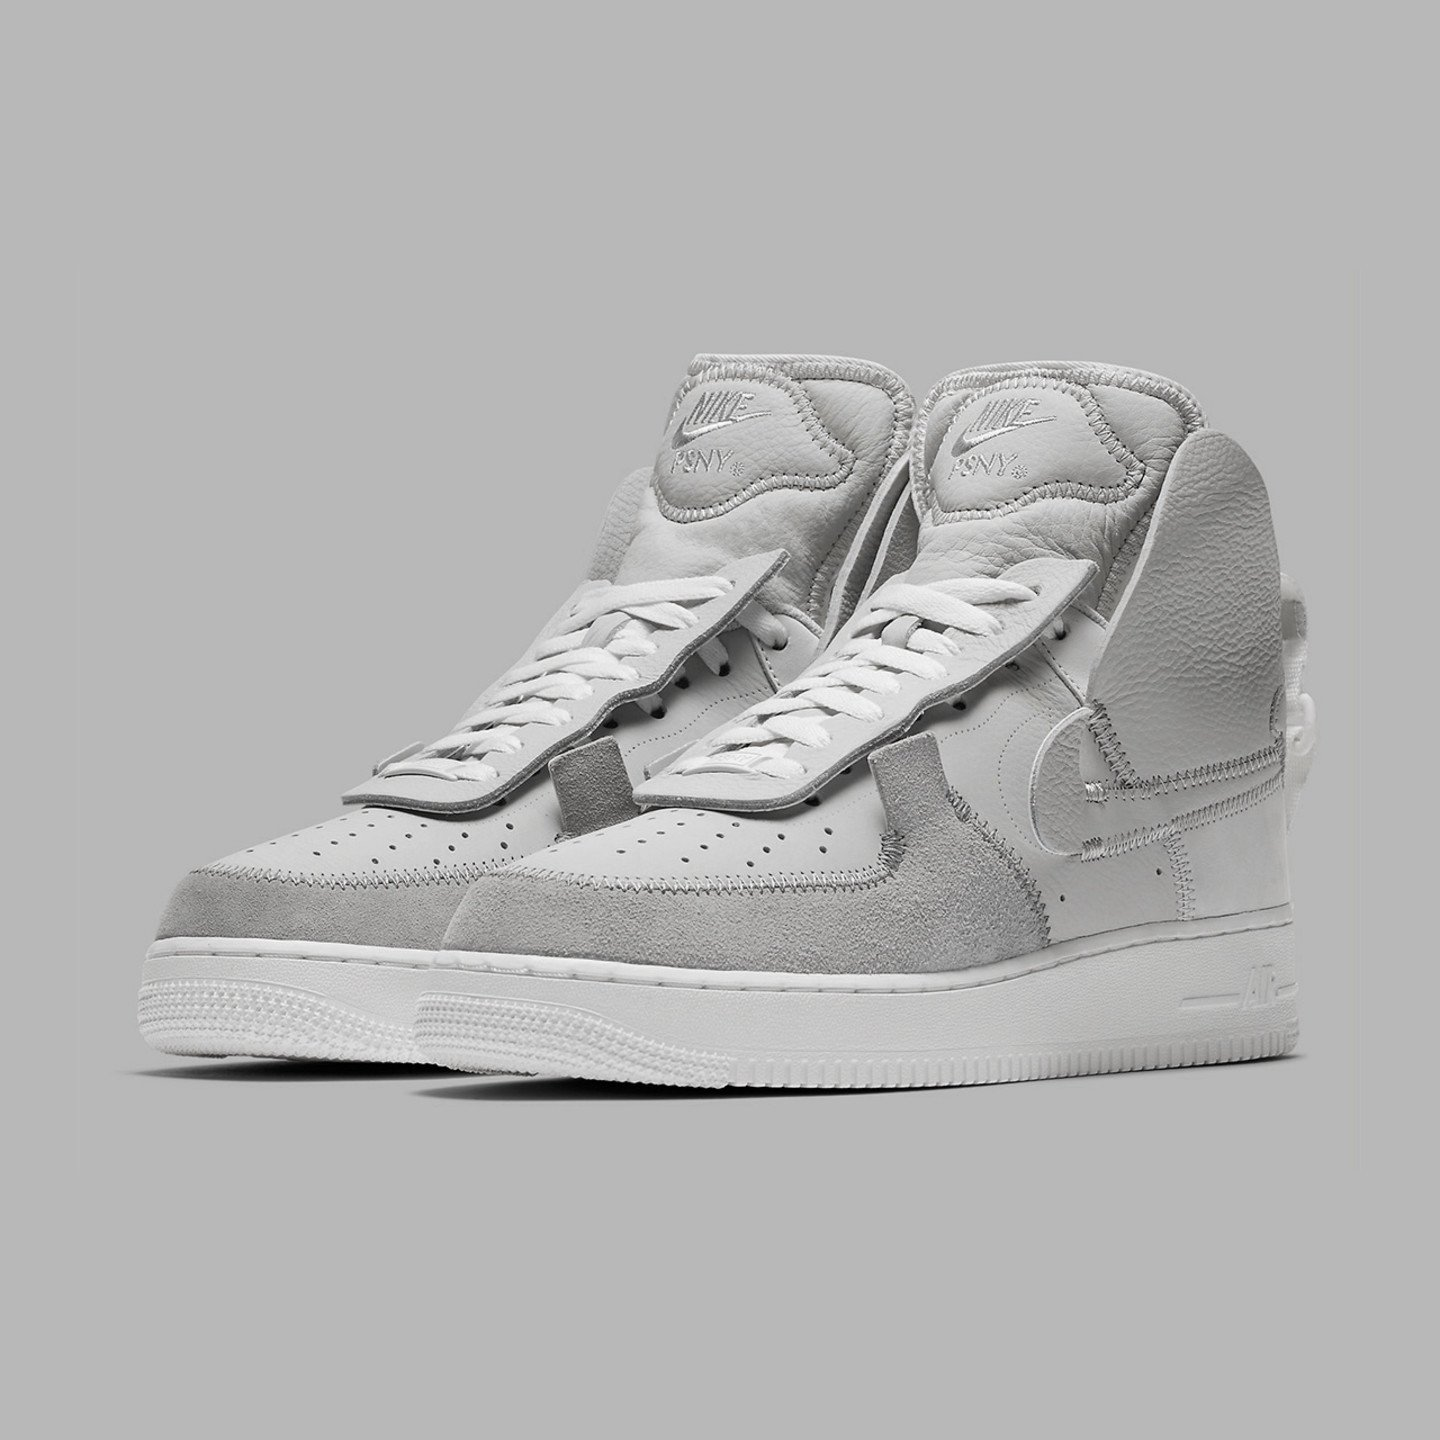 Nike Air Force 1 High / Low x PSNY Matte Silver / Light Bone / Sail / White AO9292-001